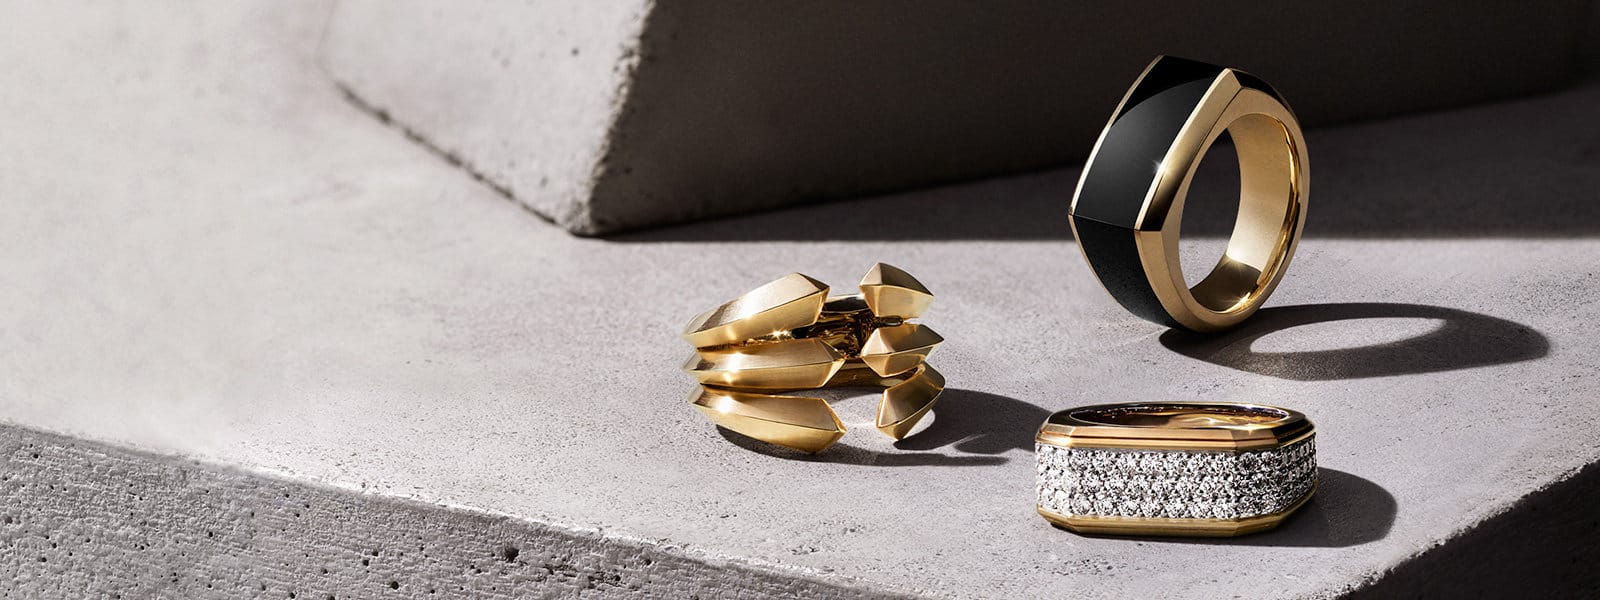 Three David Yurman men's Roman and Pavé rings, in 18K yellow gold with or without black onyx or white diamonds, in a group on a light grey stone and casting long shadows.